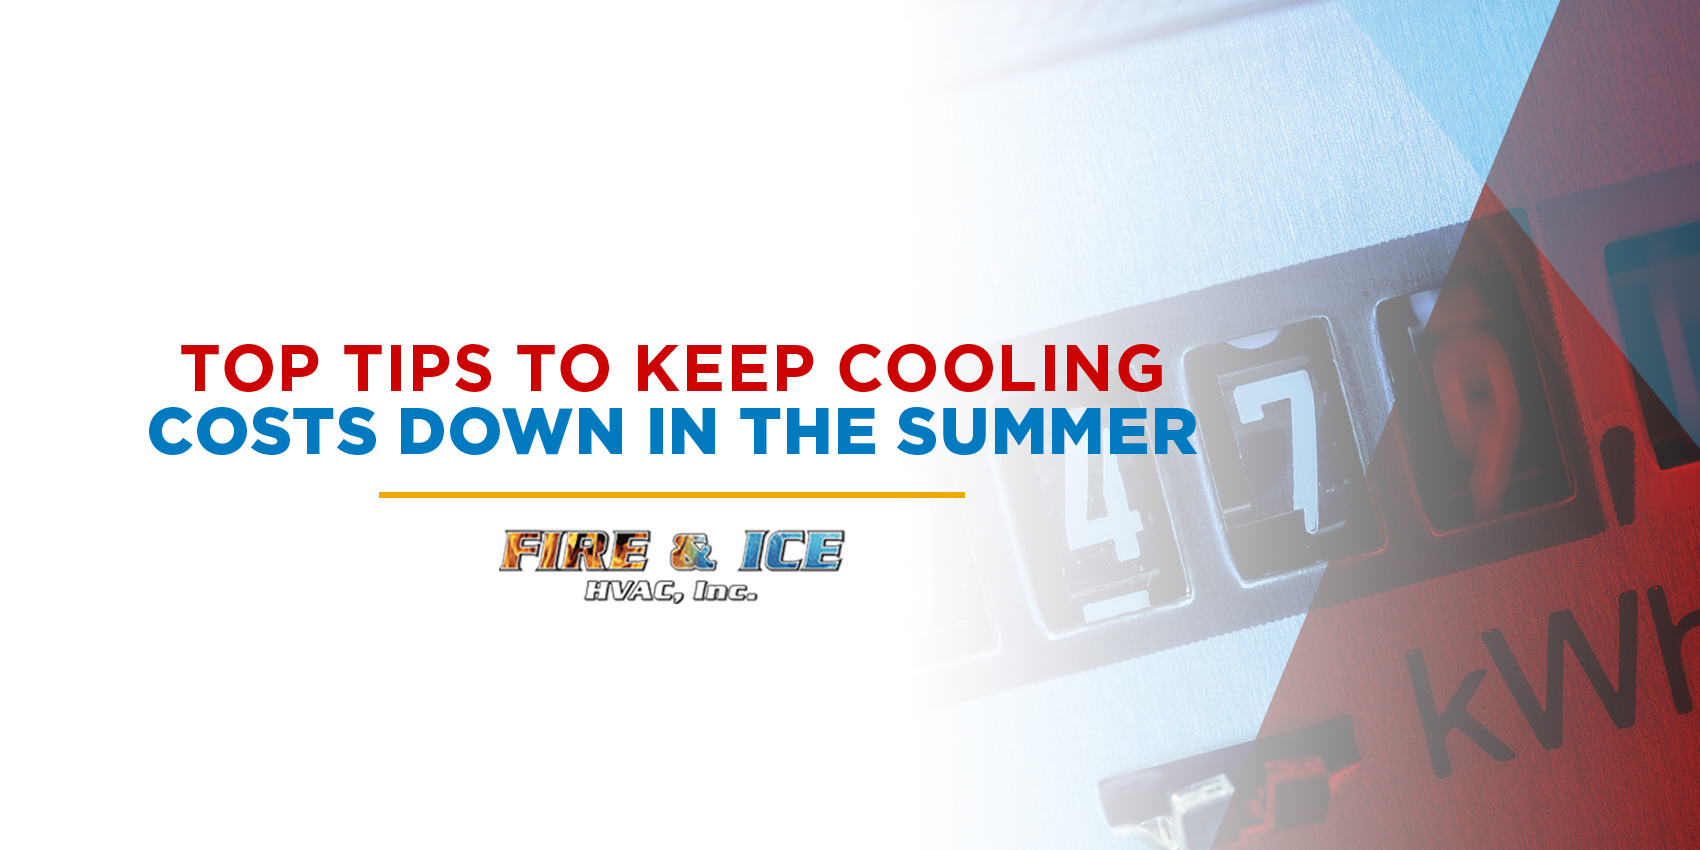 Top Tips to Keep Cooling Costs Down in the Summer